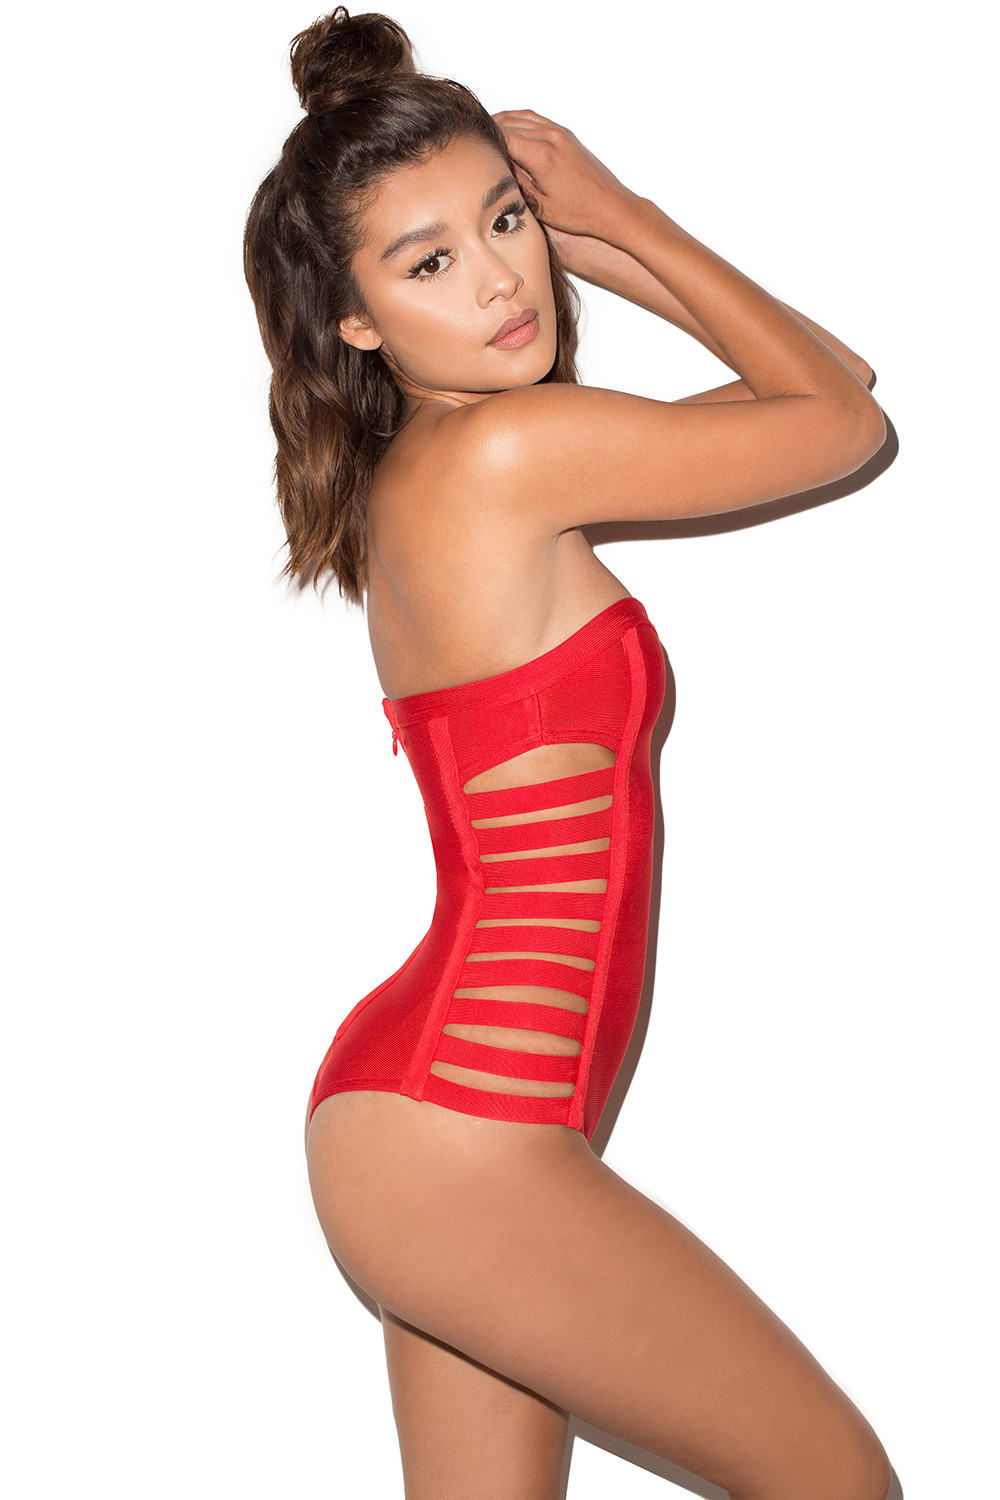 Find great deals on eBay for red strapless top swimsuit. Shop with confidence.